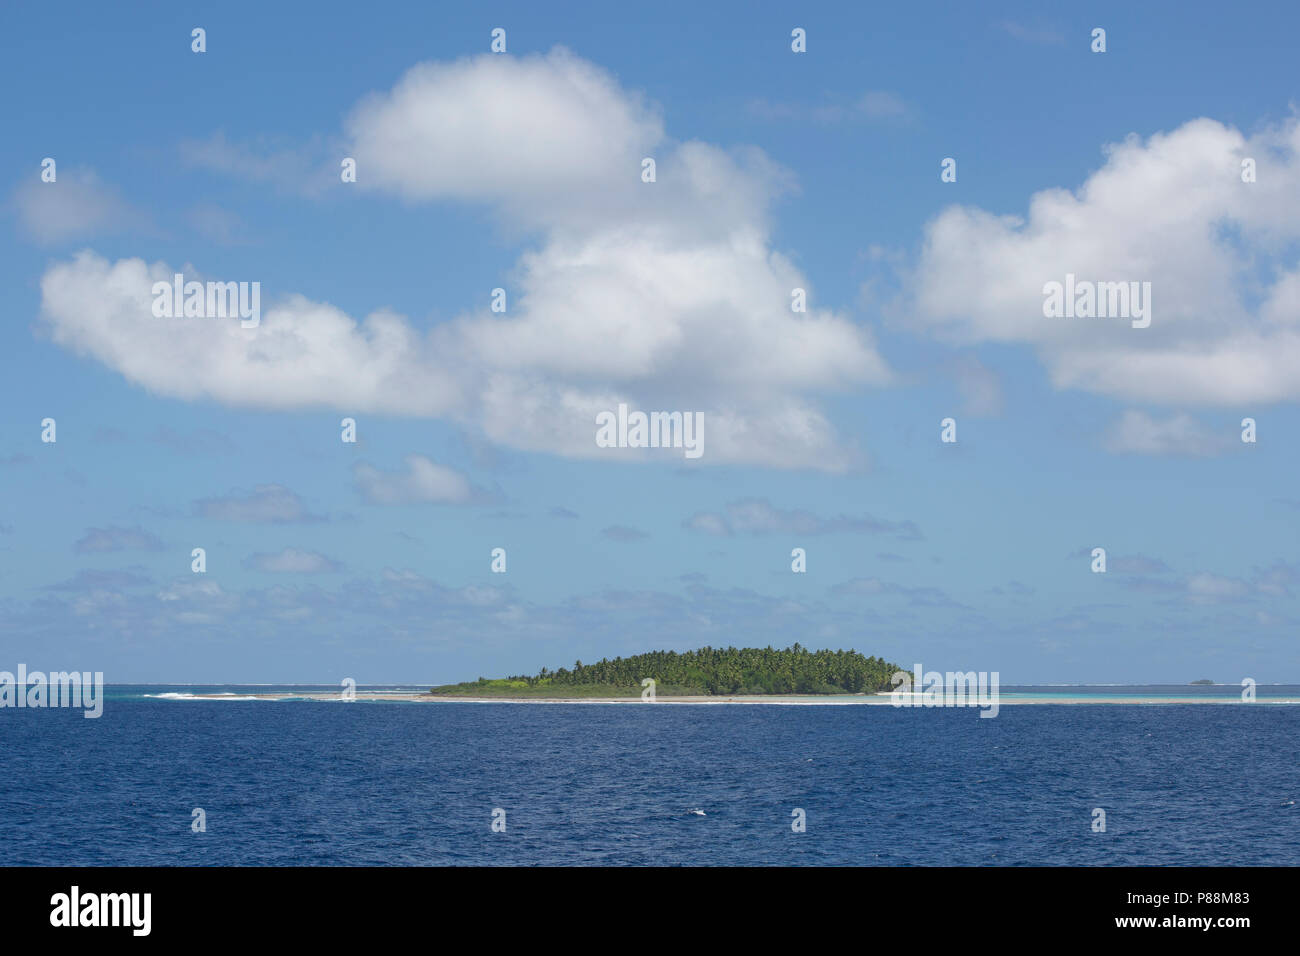 Anchorage Island, Suwarrow Atoll, Cook Islands - Stock Image